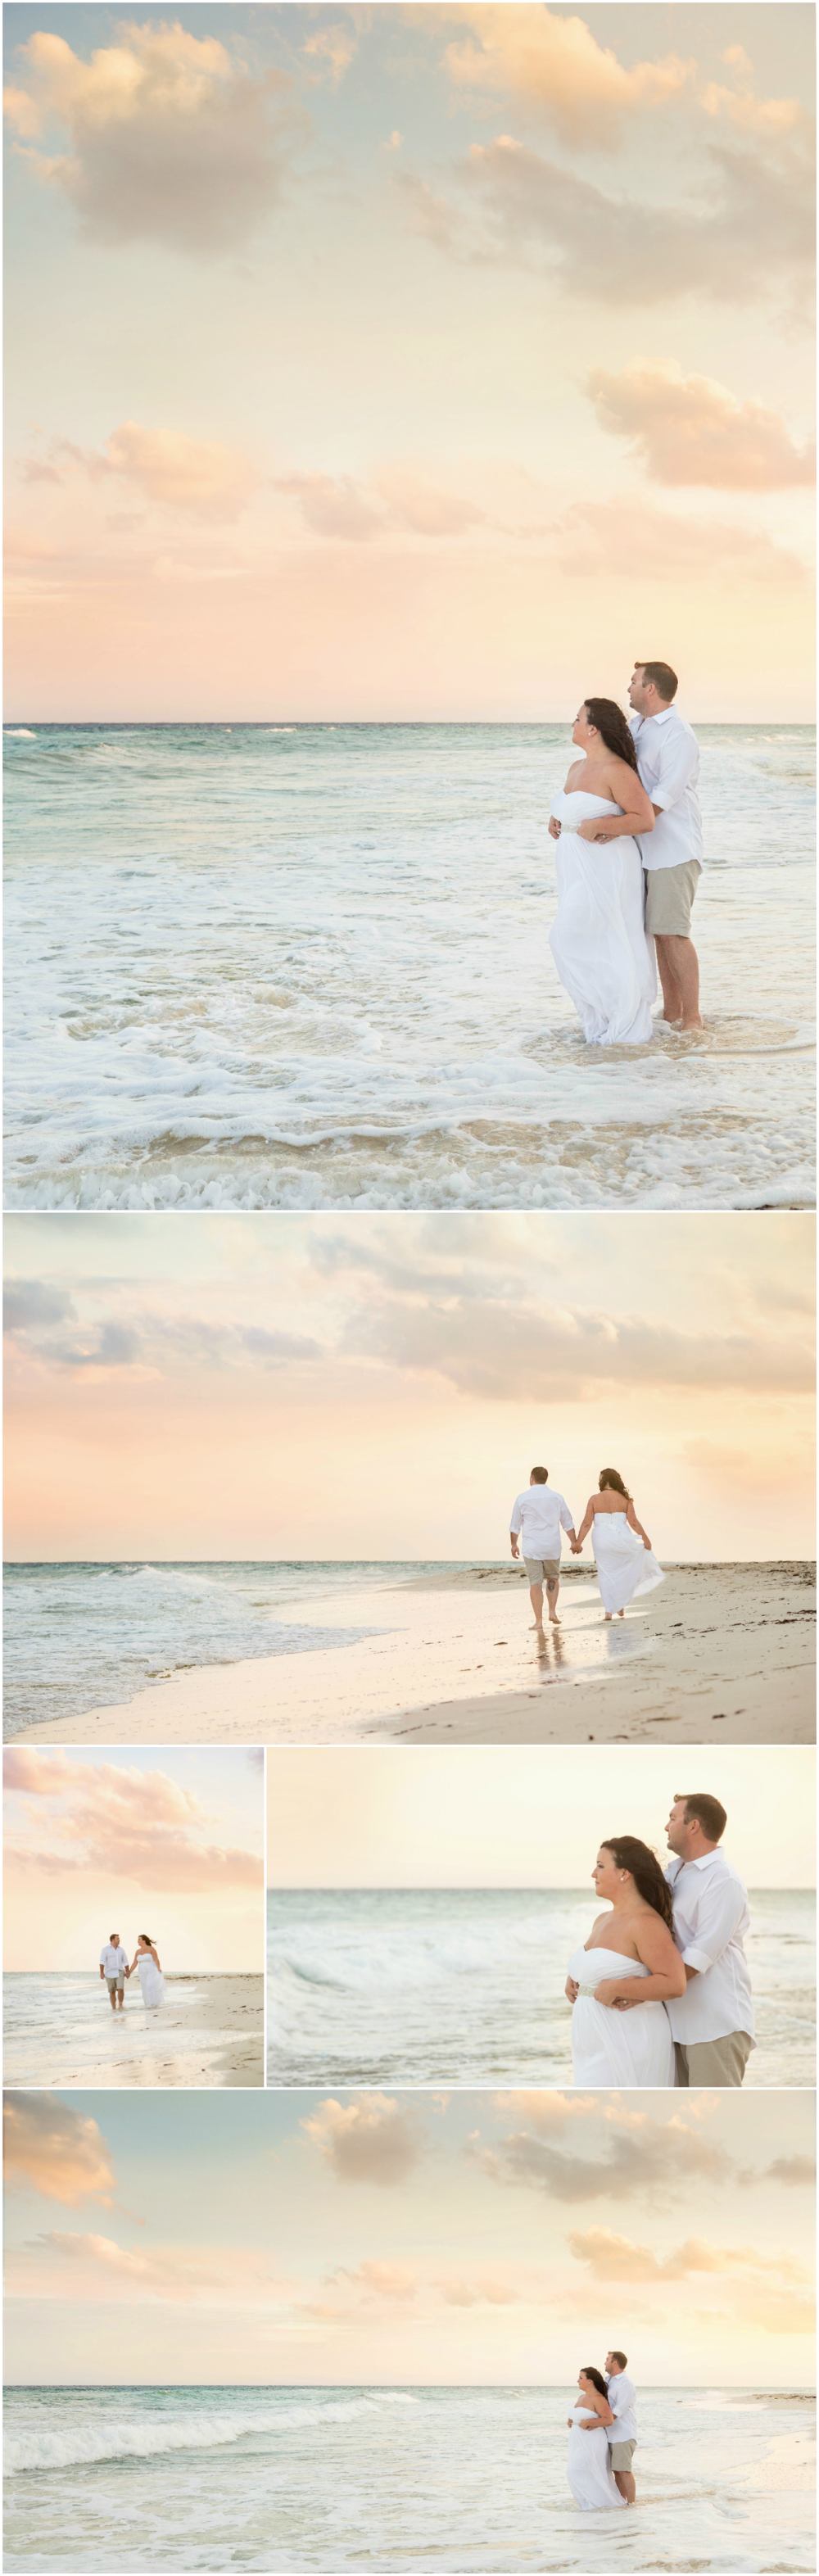 riviera-maya-wedding-ttd_5.png